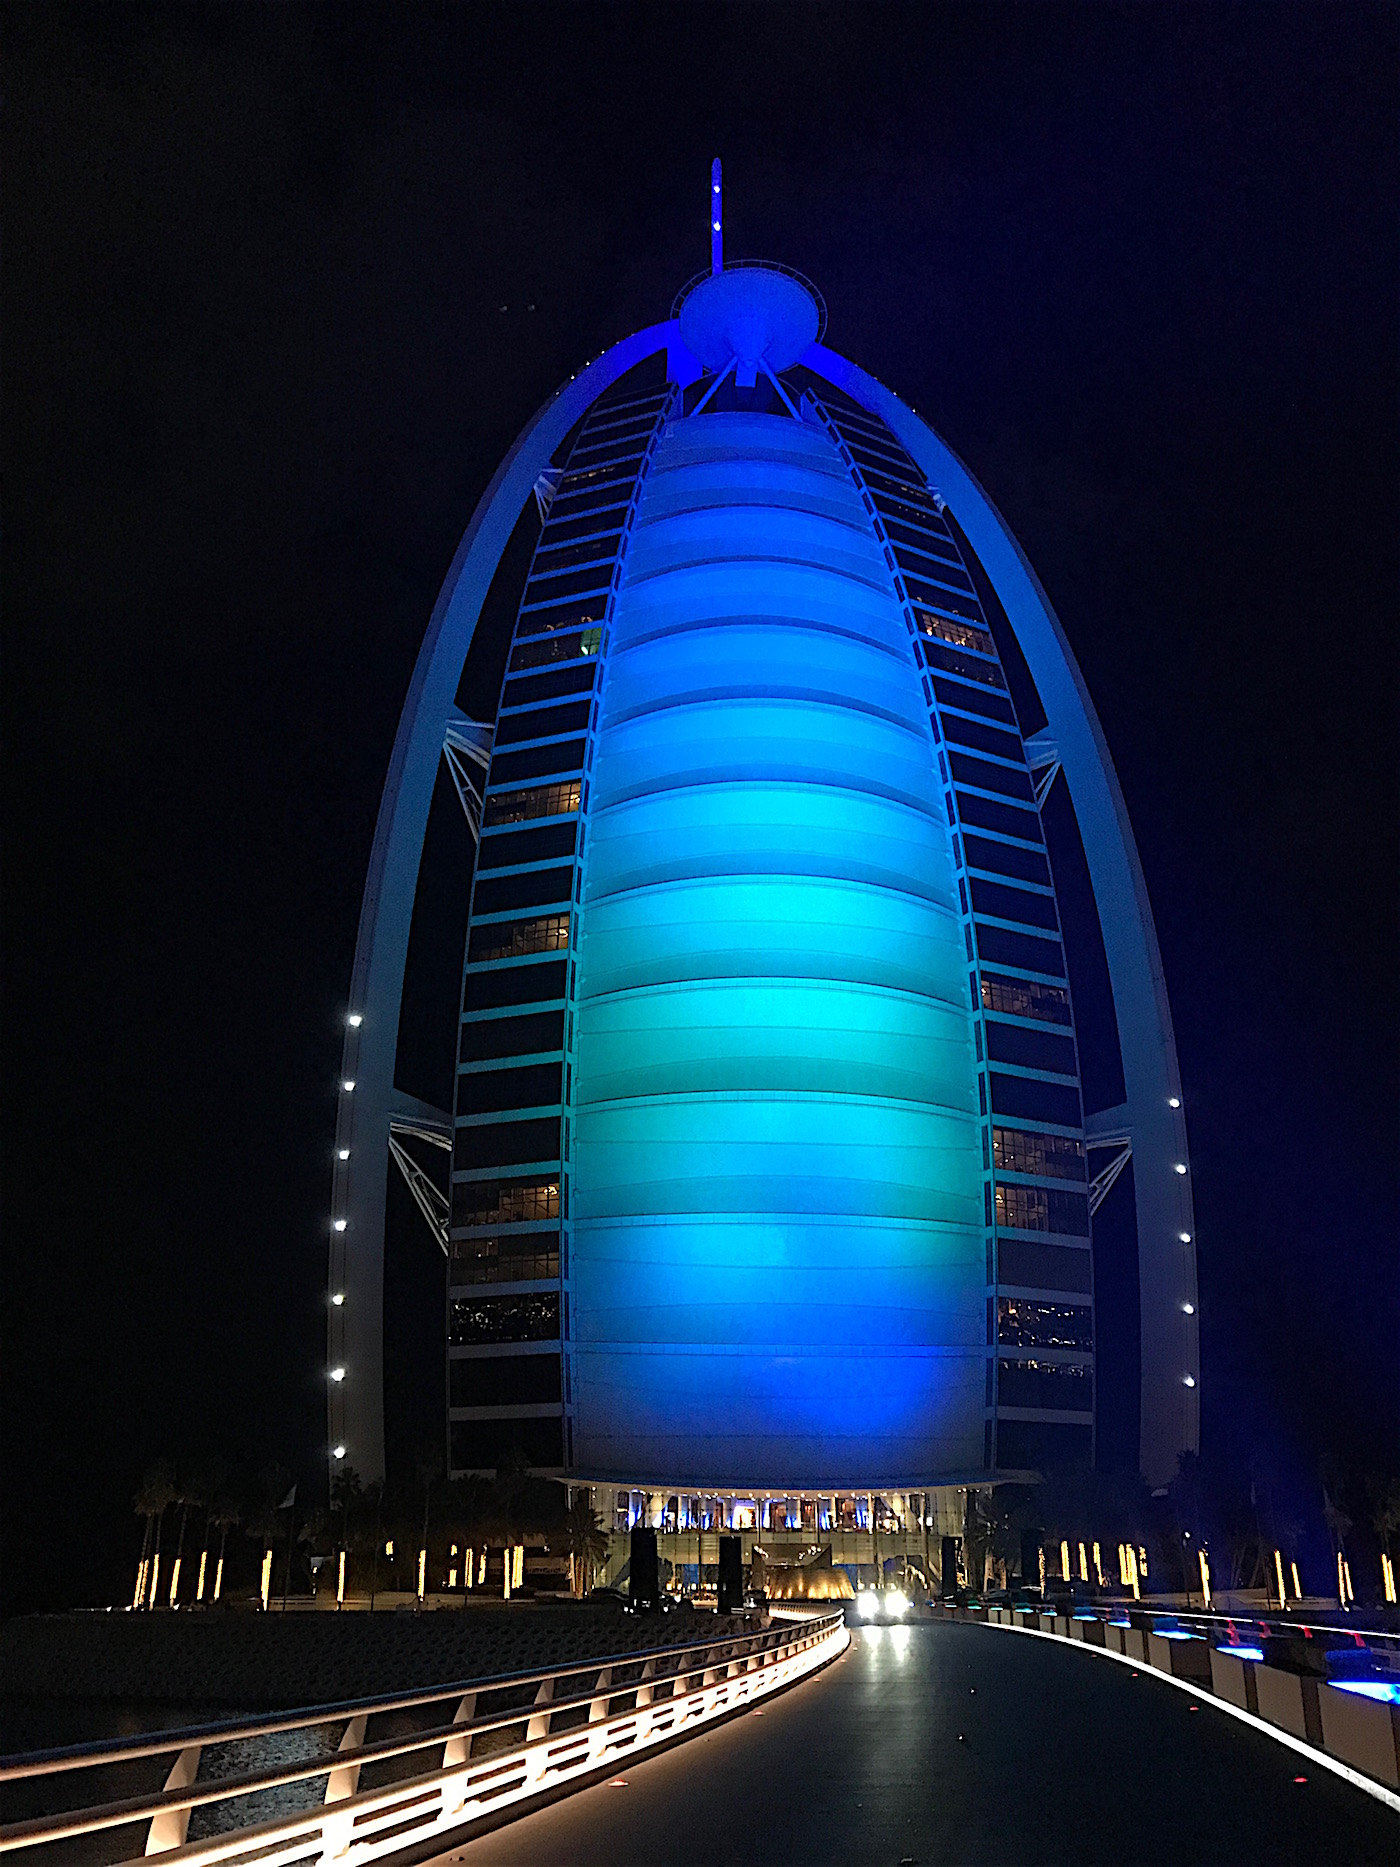 Click here to see the lights on the Hotel Burj Al Arab